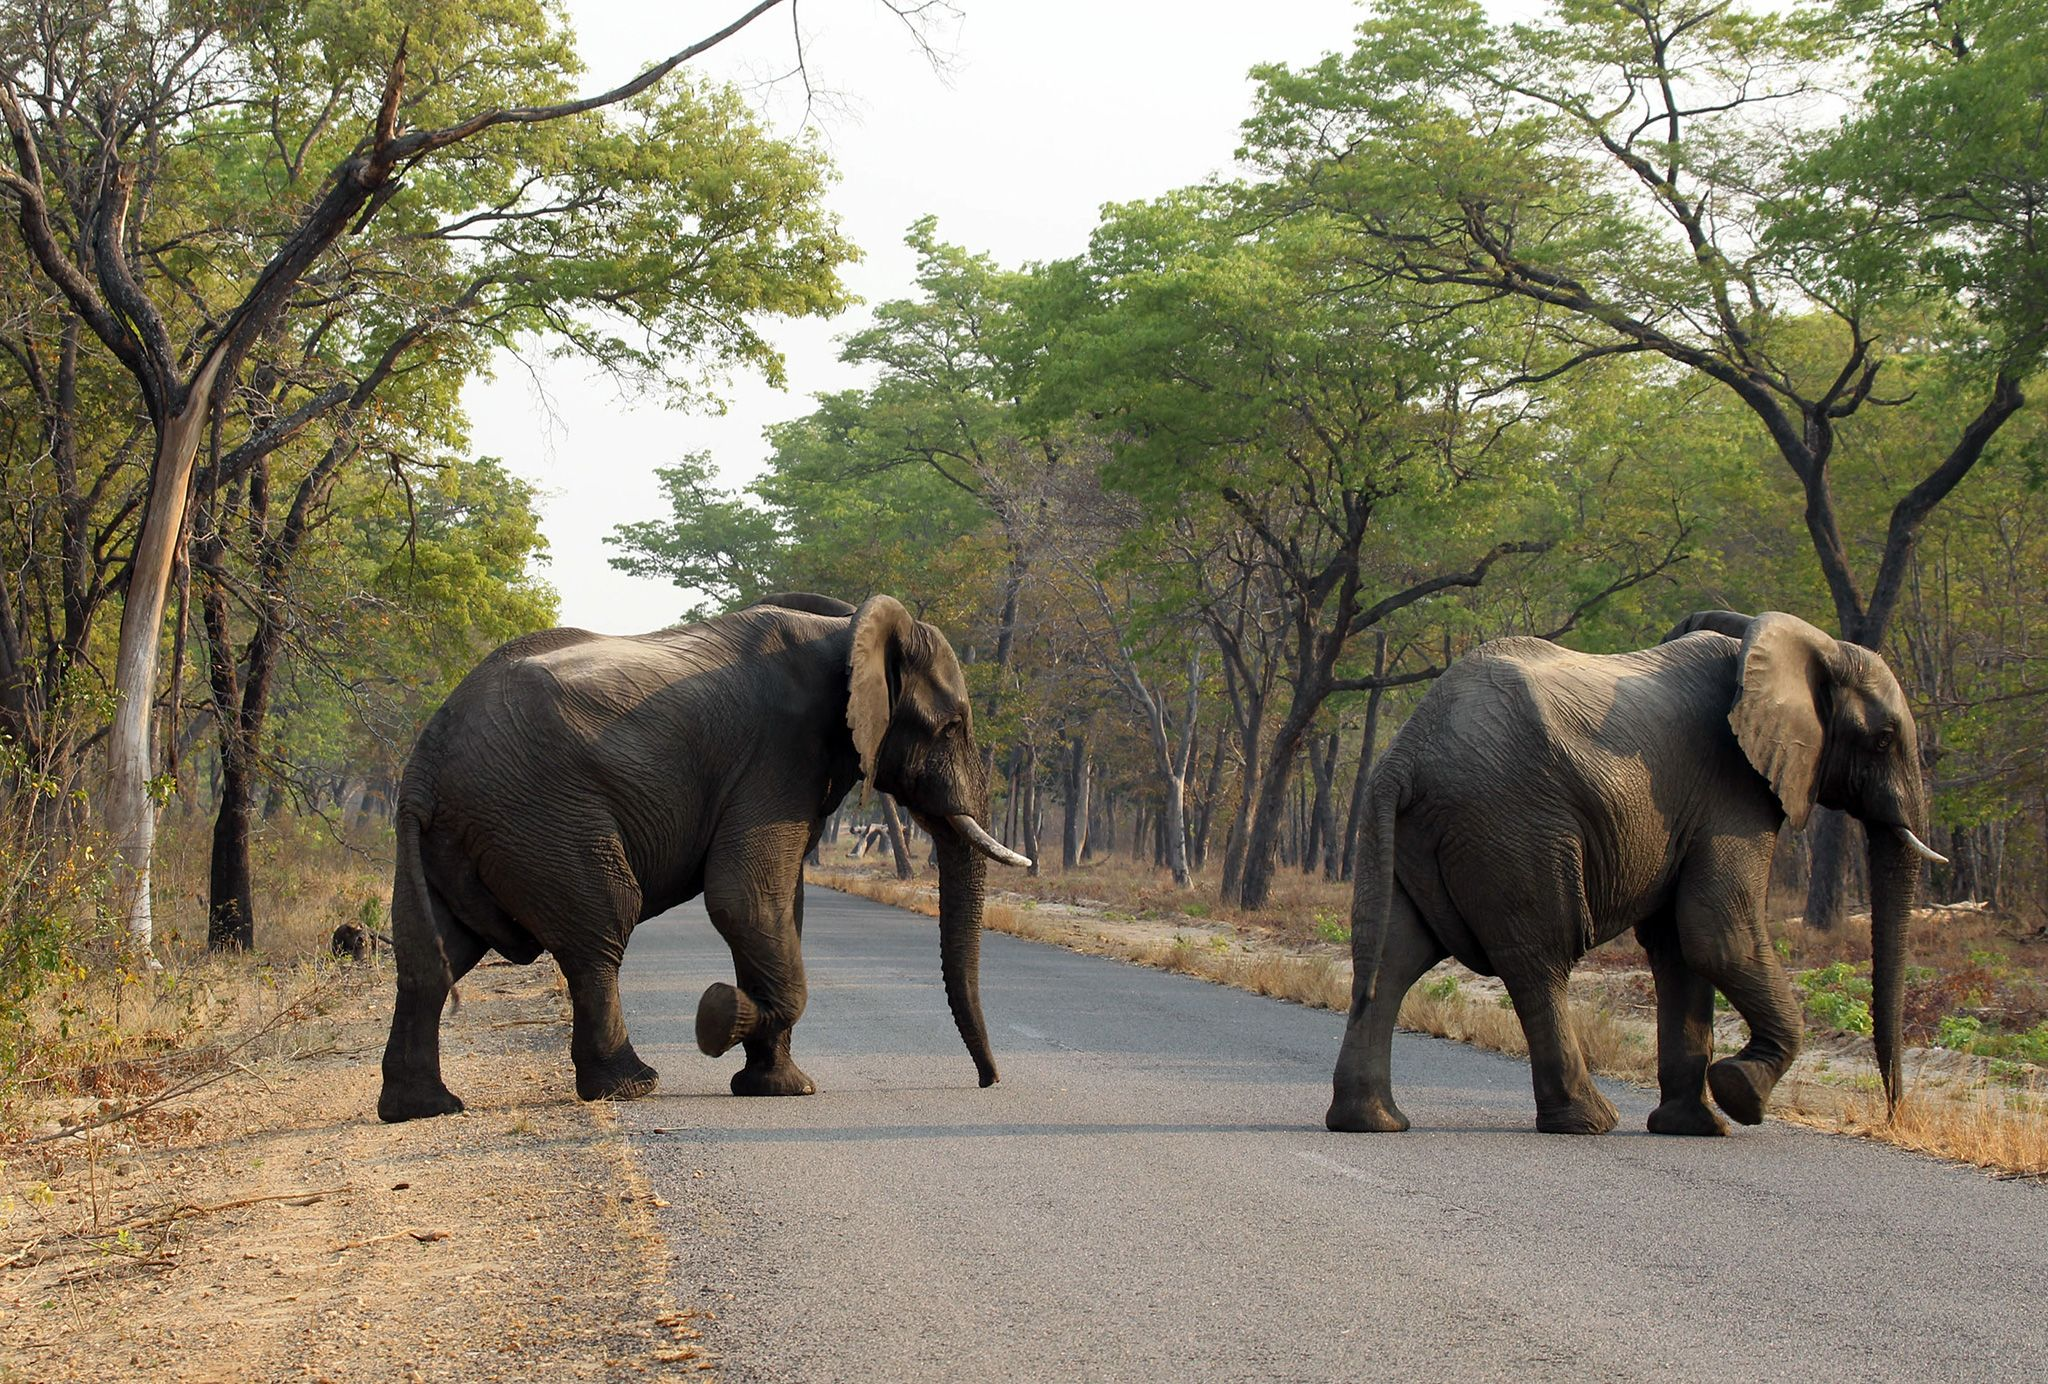 Mining Director Busted For Elephant Poisonings Wild Elephant